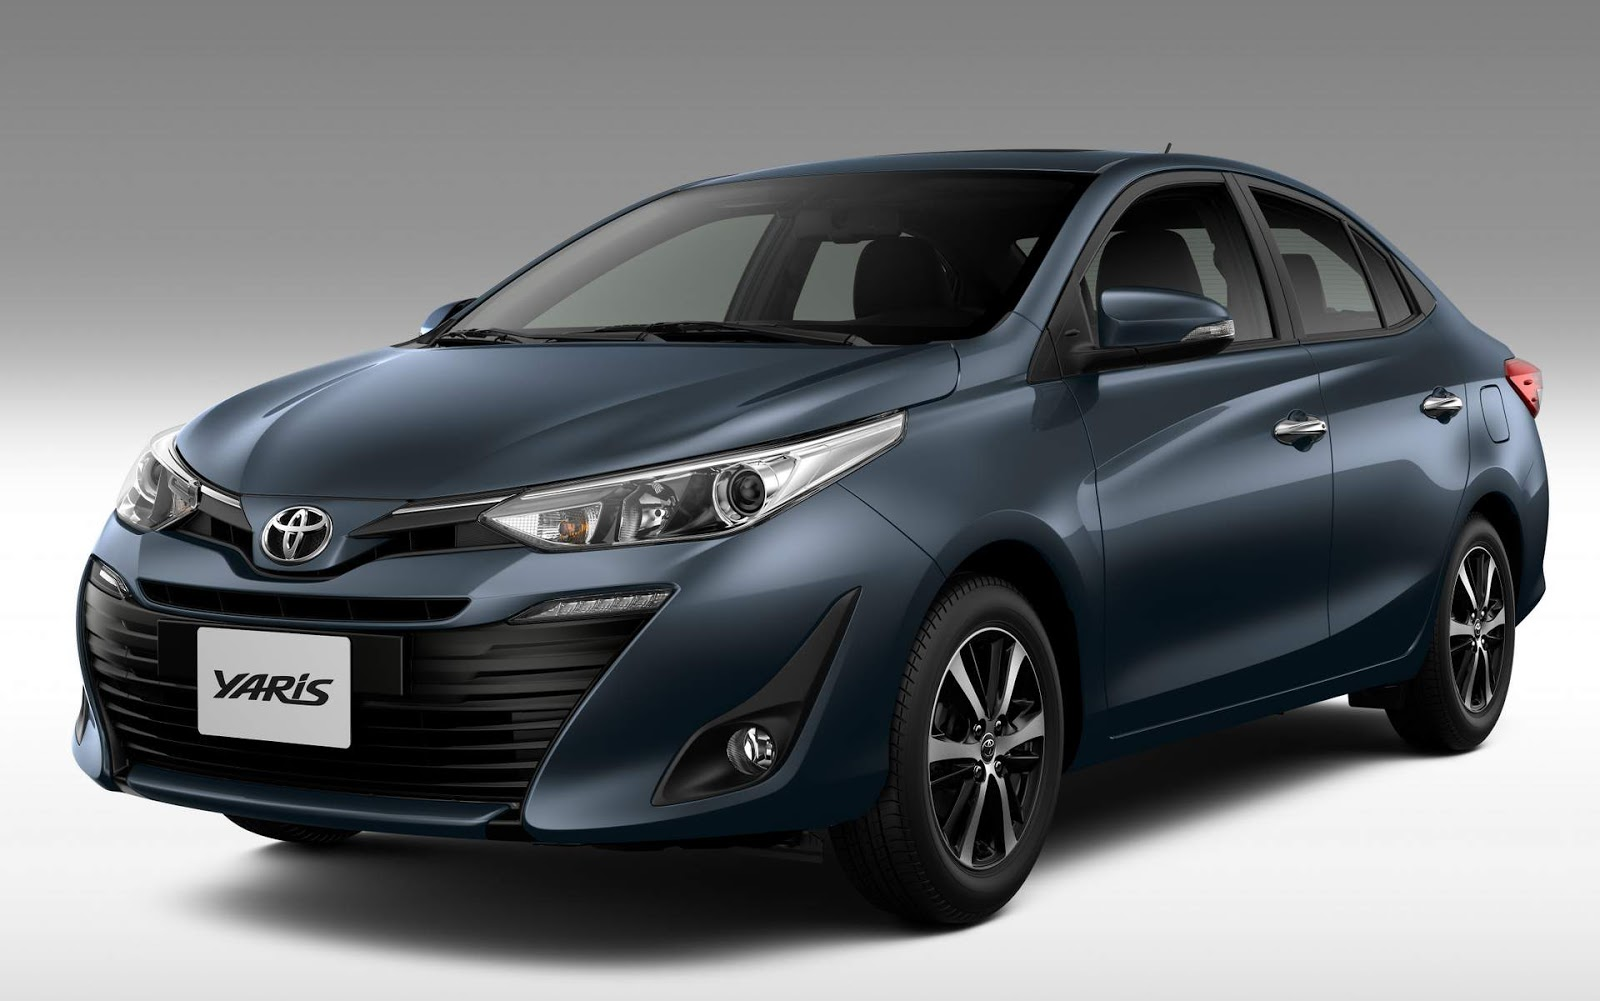 toyota yaris hatch e sed tabela de pre os divulgada car blog br. Black Bedroom Furniture Sets. Home Design Ideas